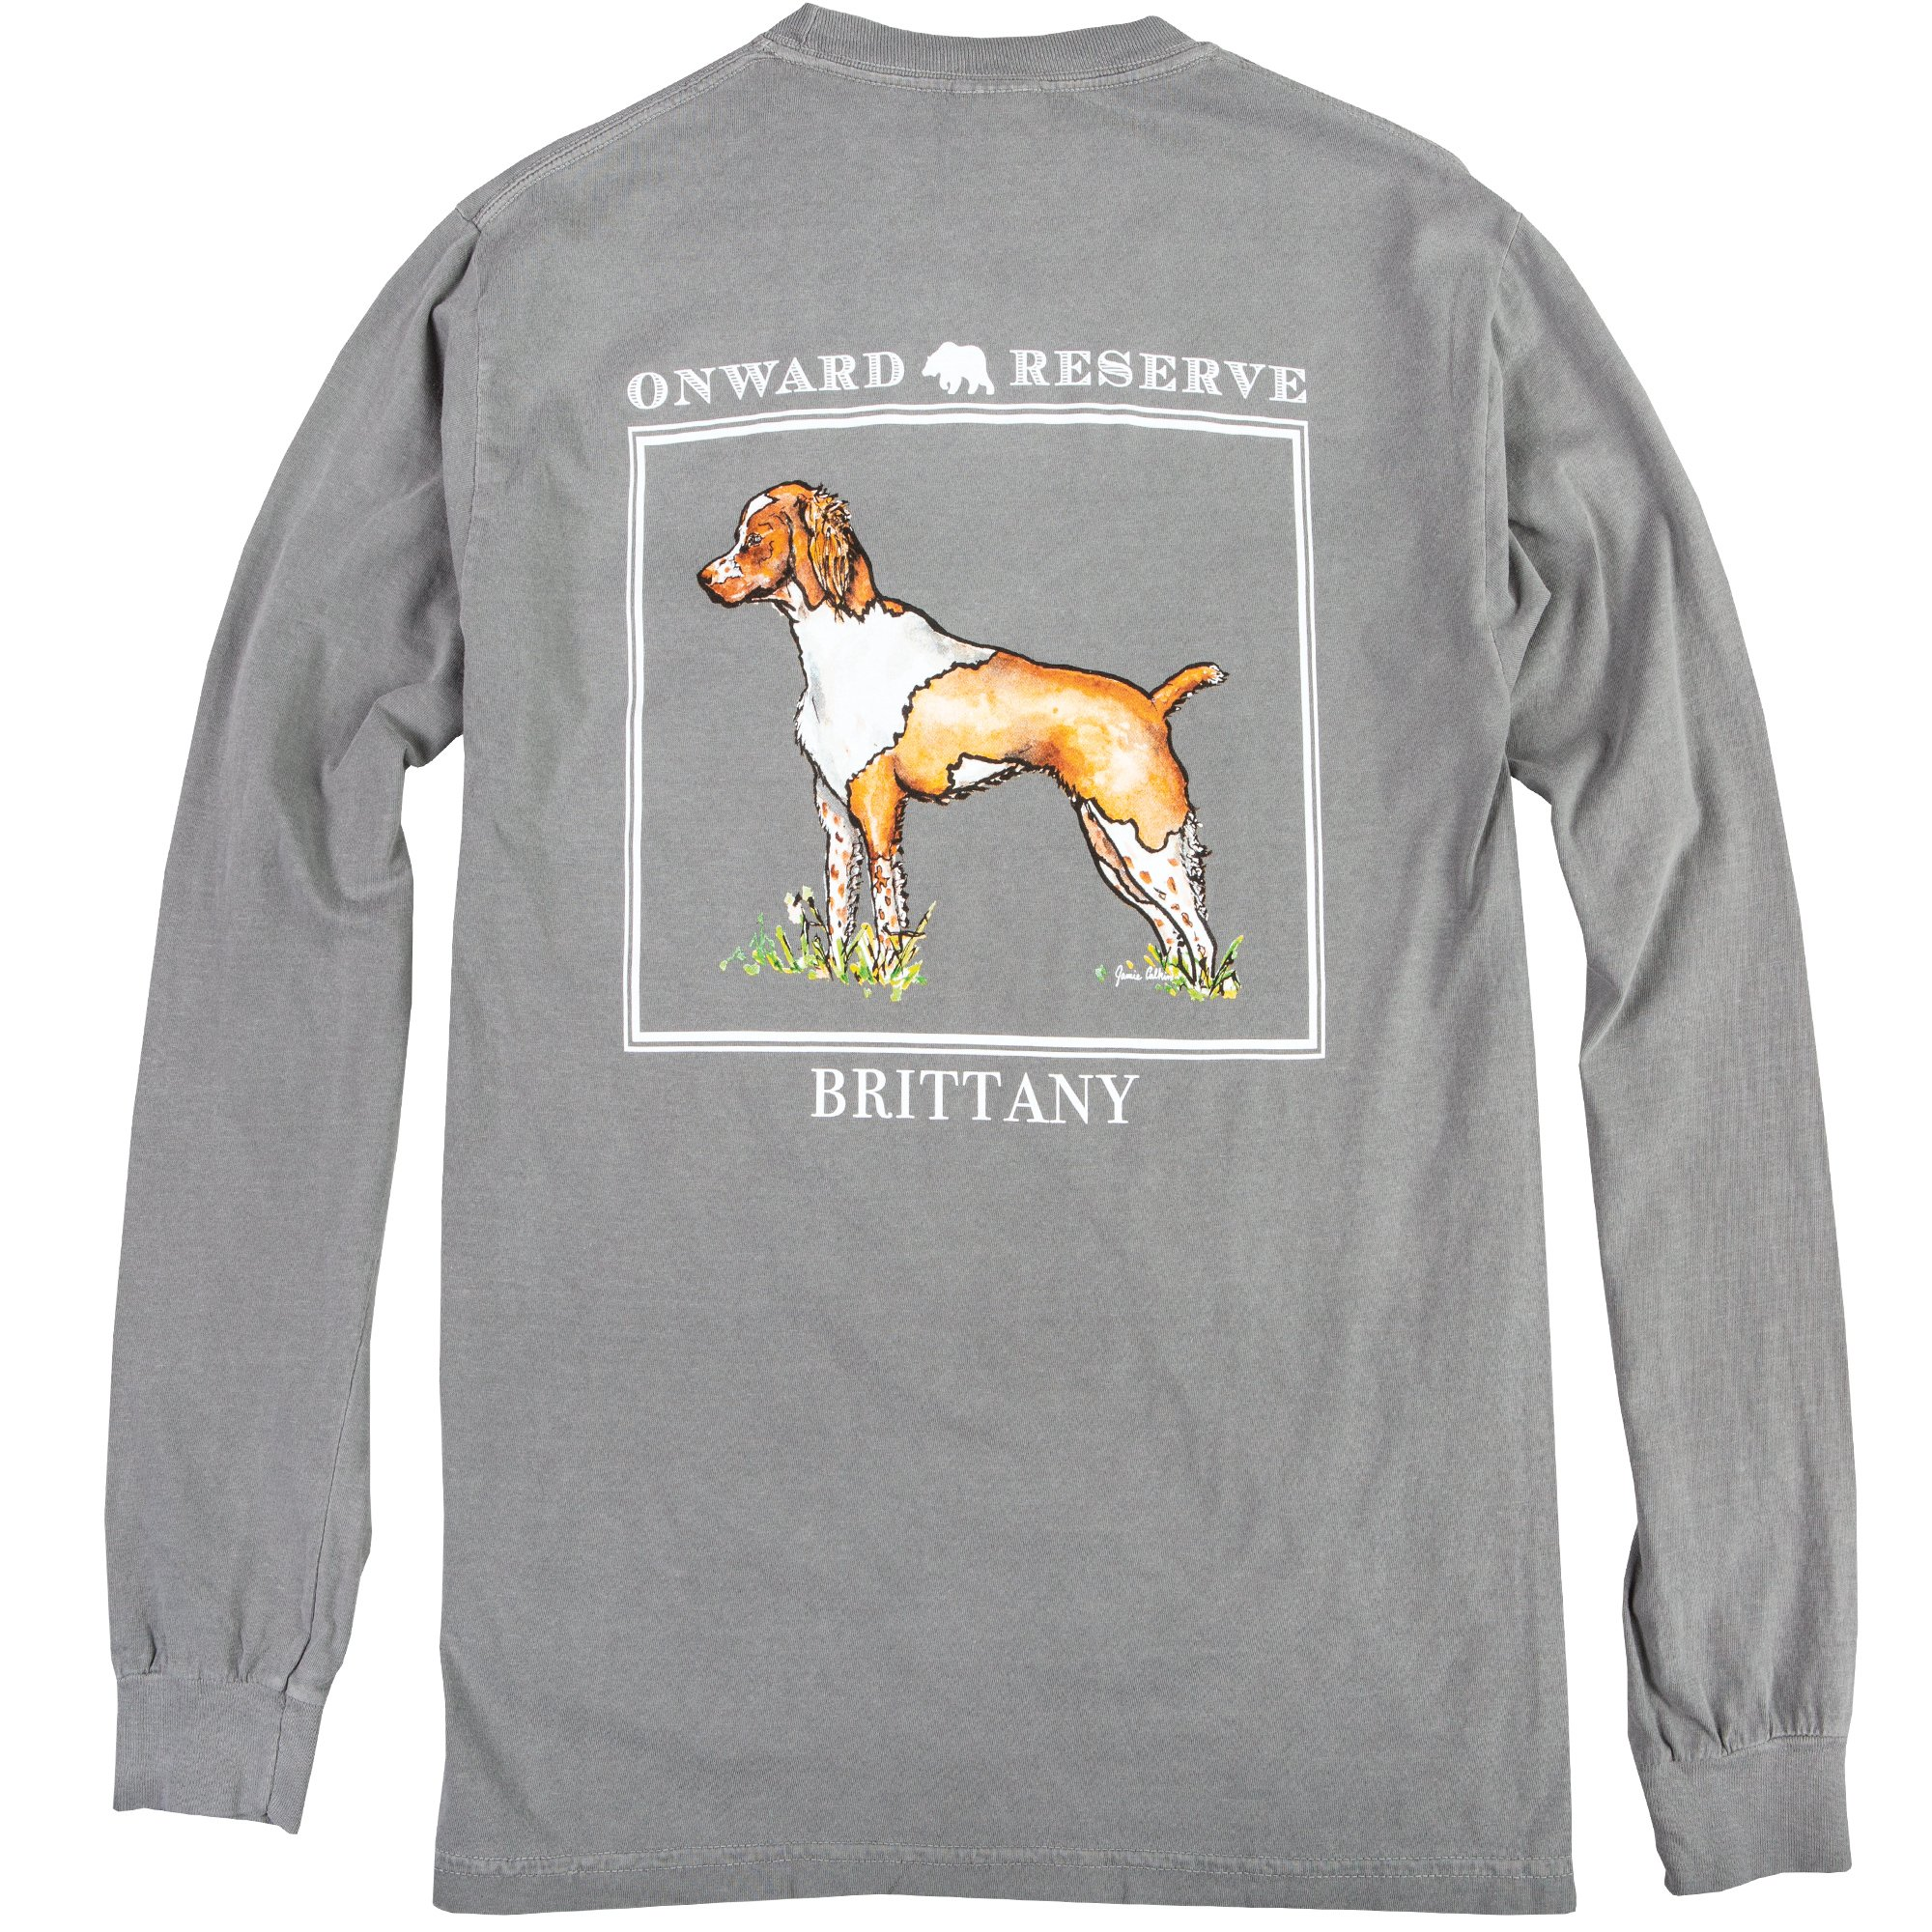 OR-Jamie-Tee-LS-Brittany-Grey-Back.jpg